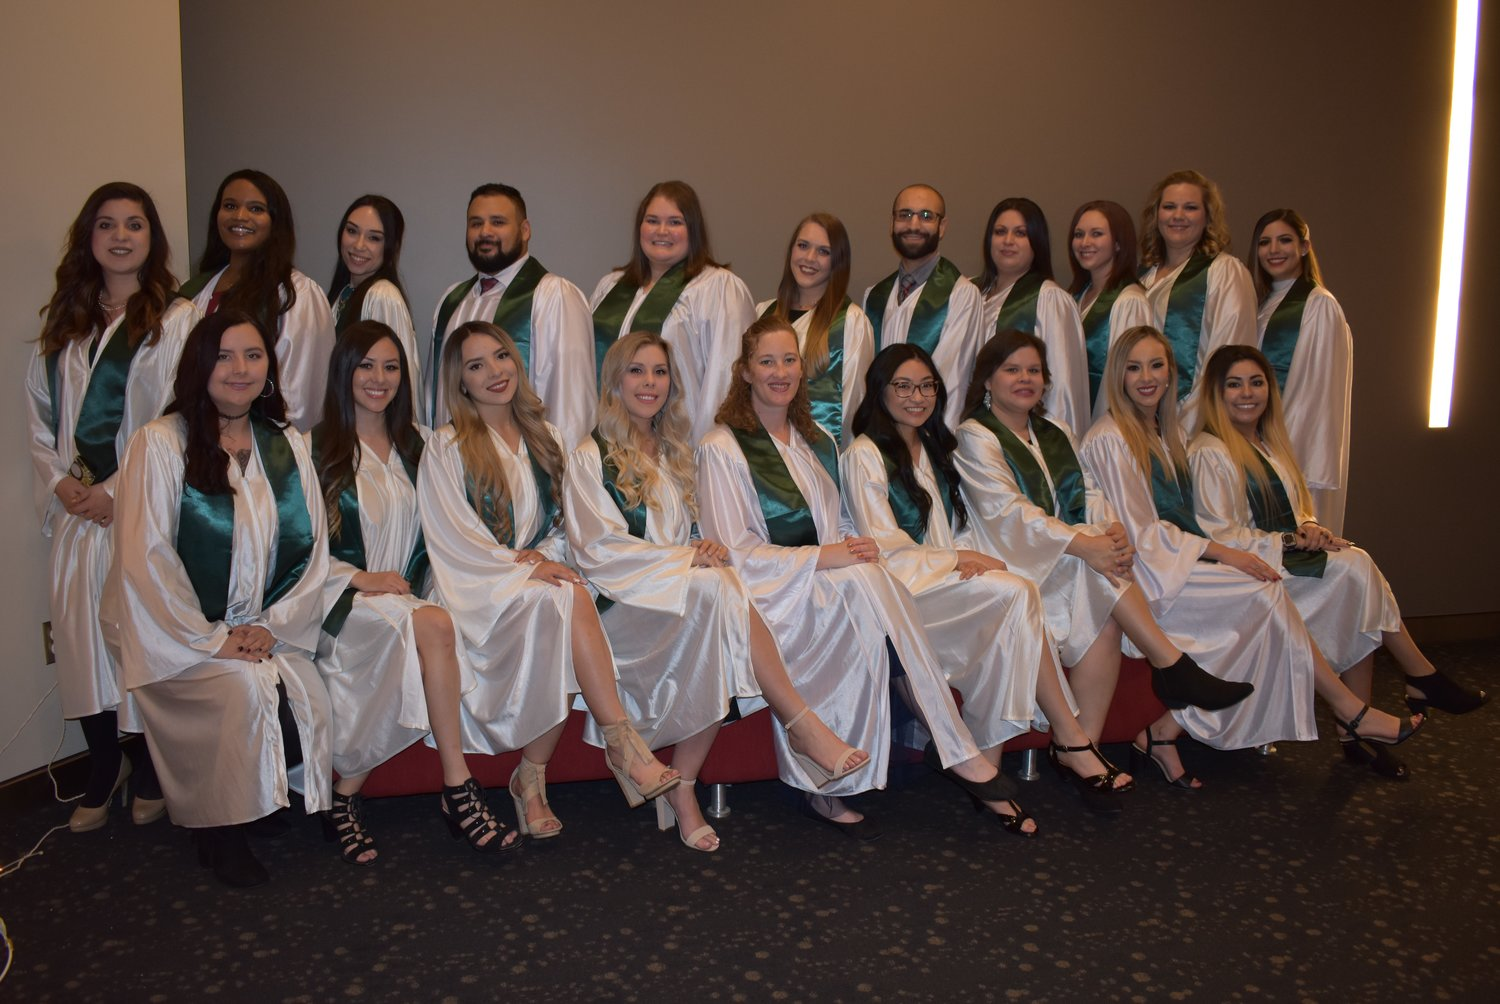 A view of the CAC nursing graduates who participated in the most recent pinning ceremony honoring their accomplishment.